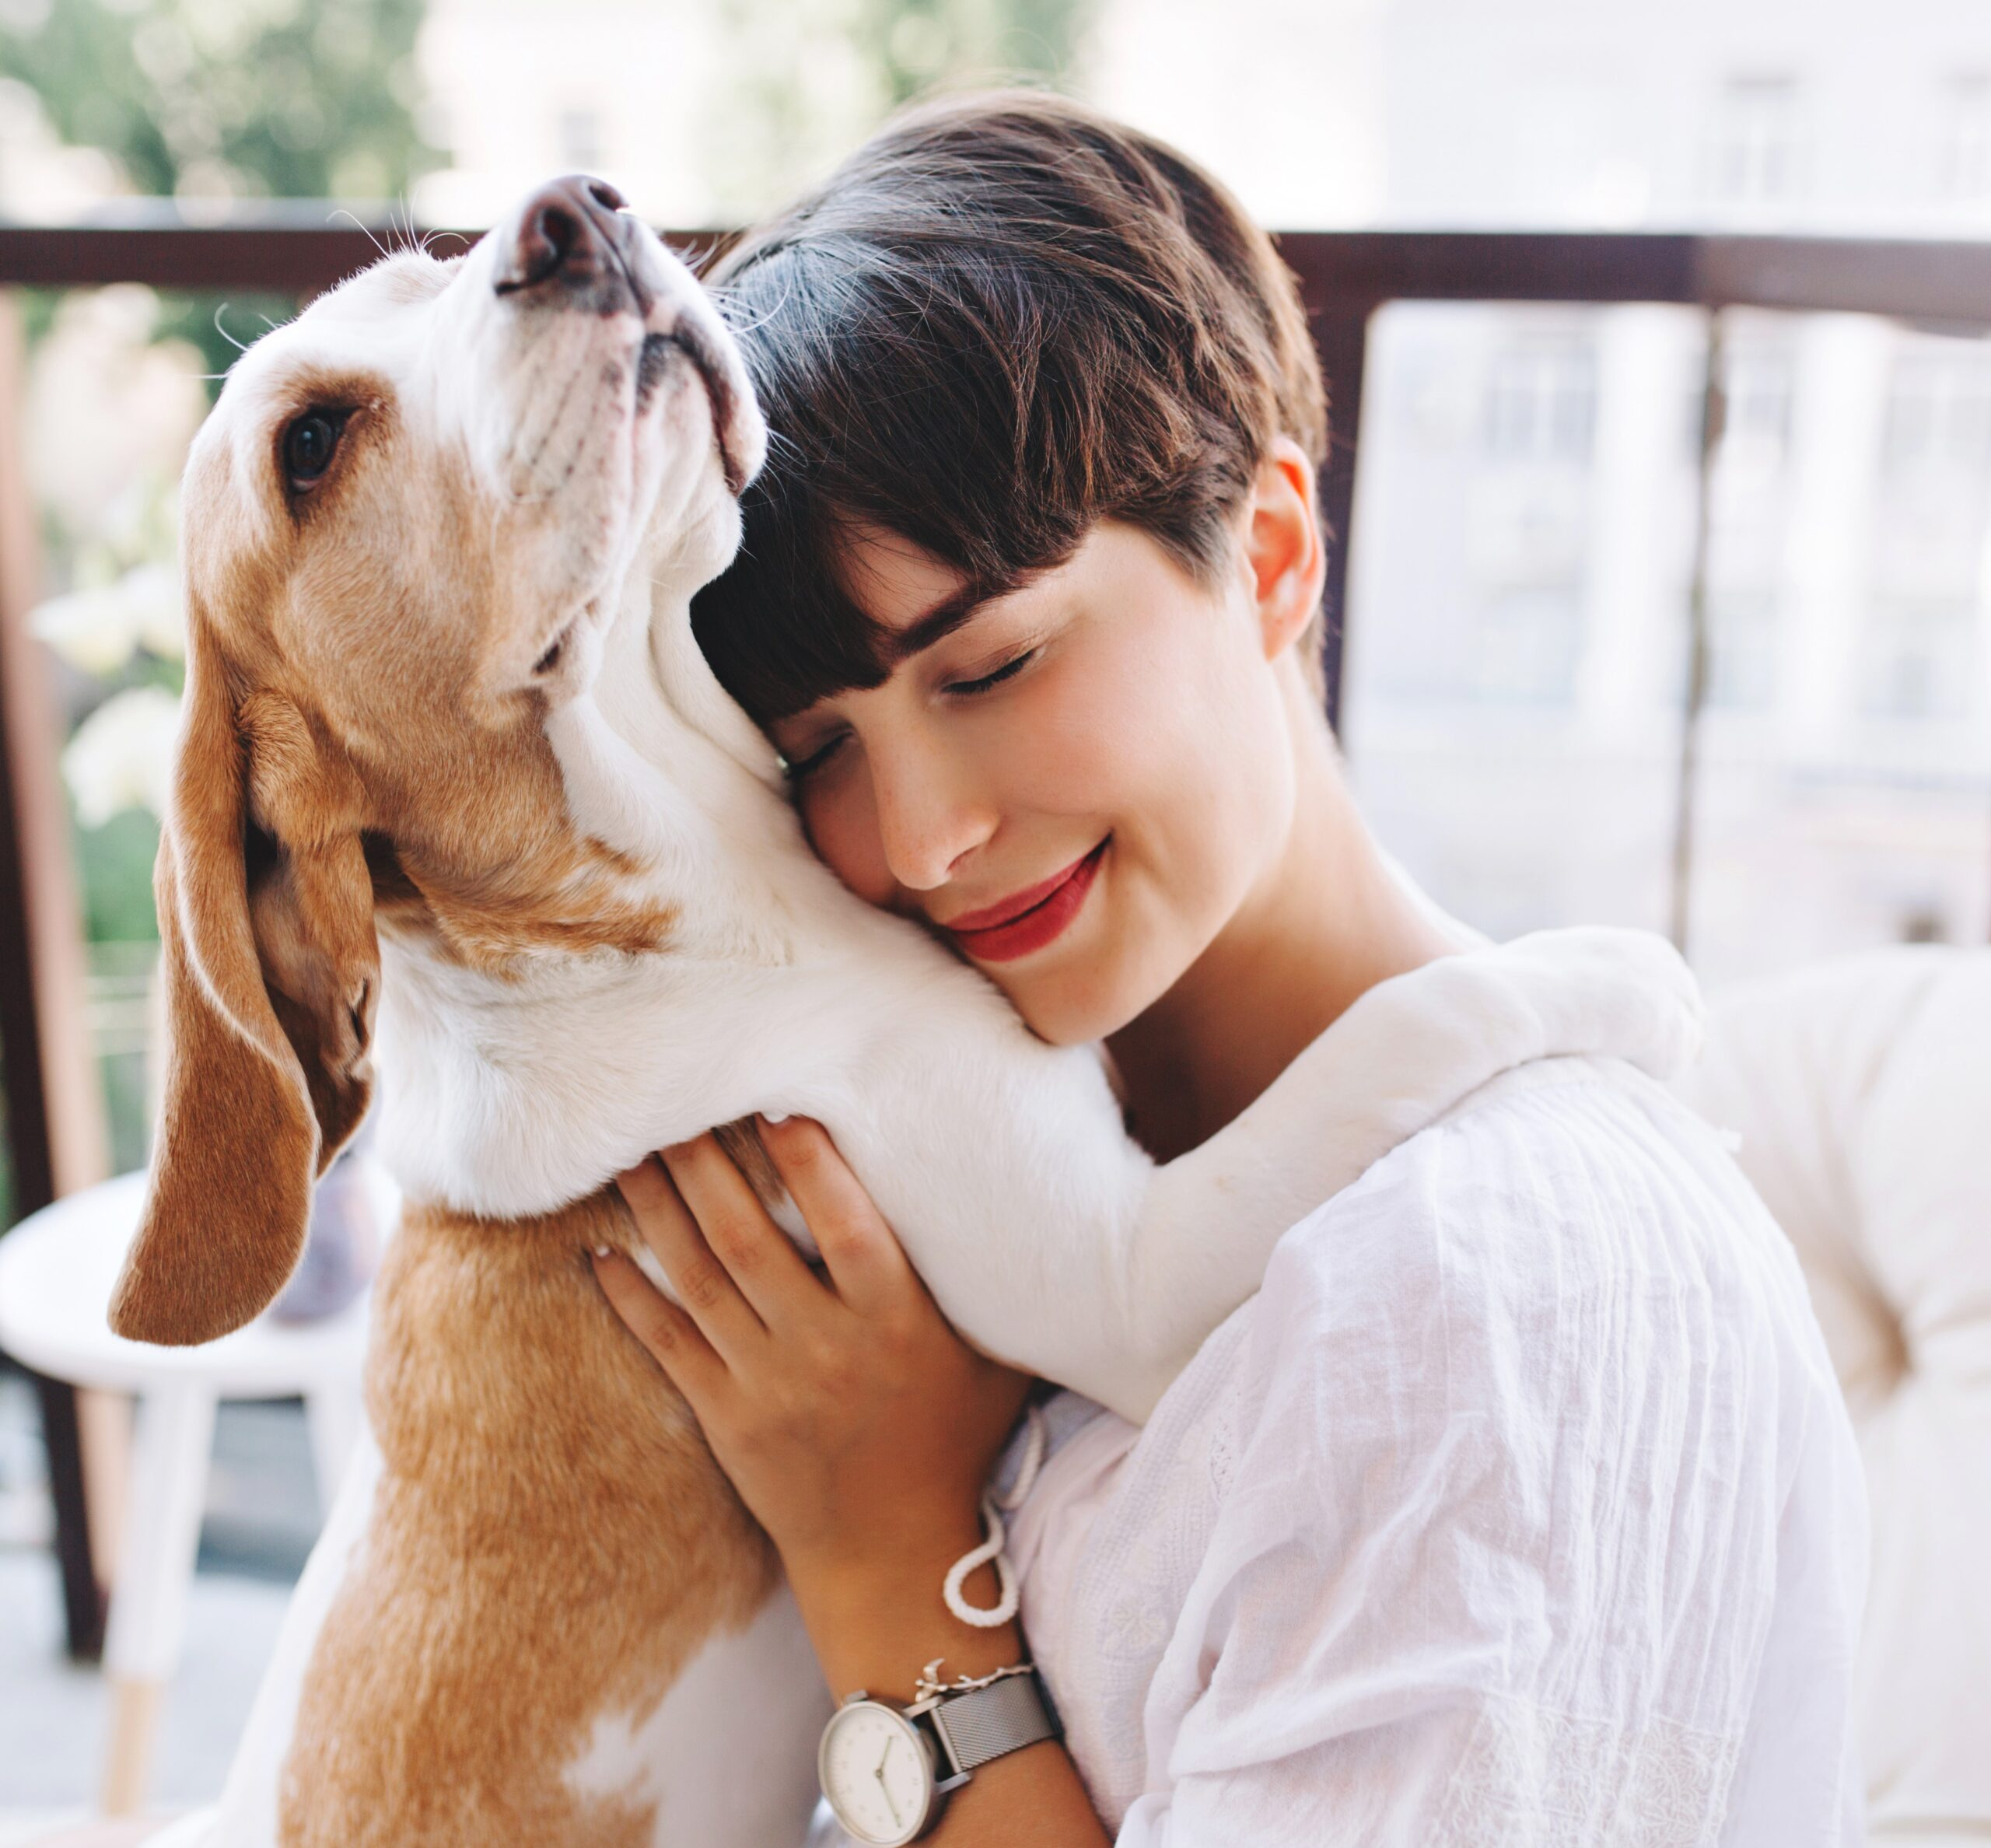 Pet Protection in Domestic Violence Situations